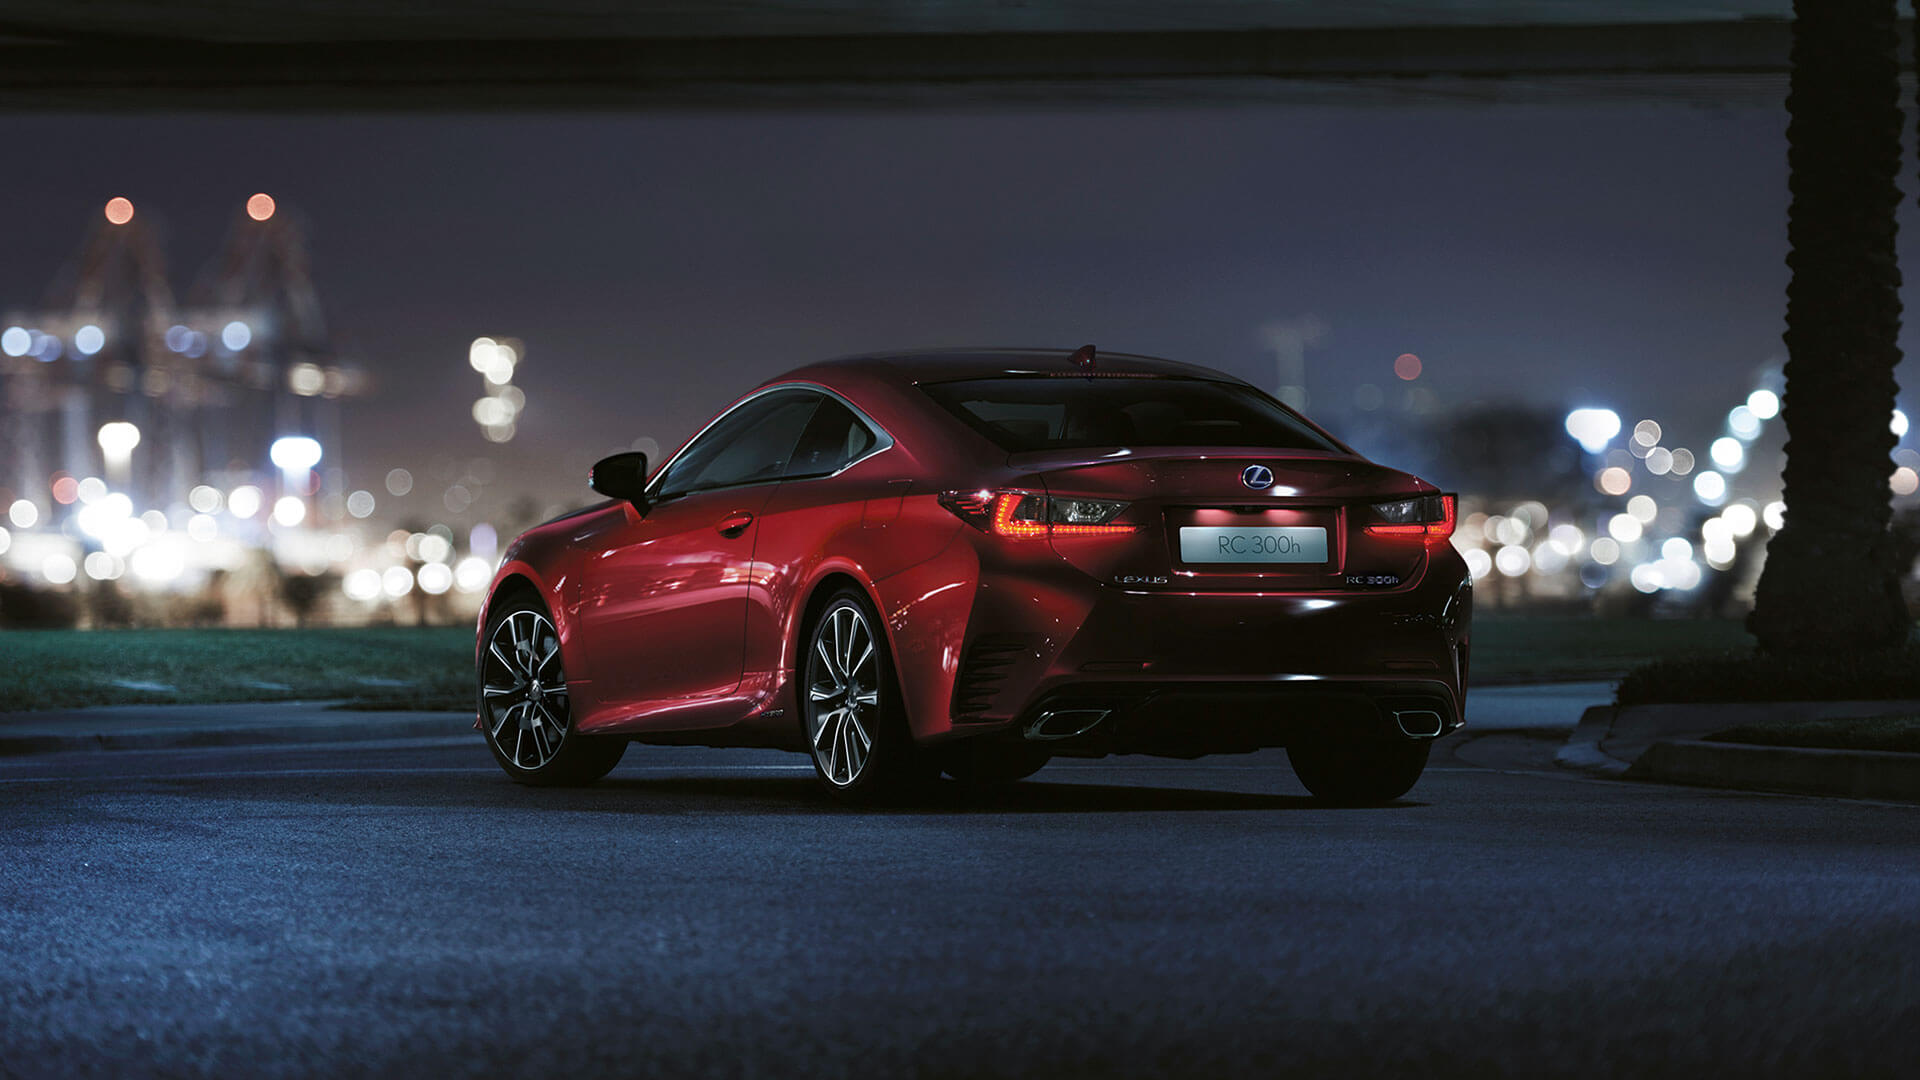 4 Ways The Lexus Rc300h F Sport Is The Perfect Hybrid For